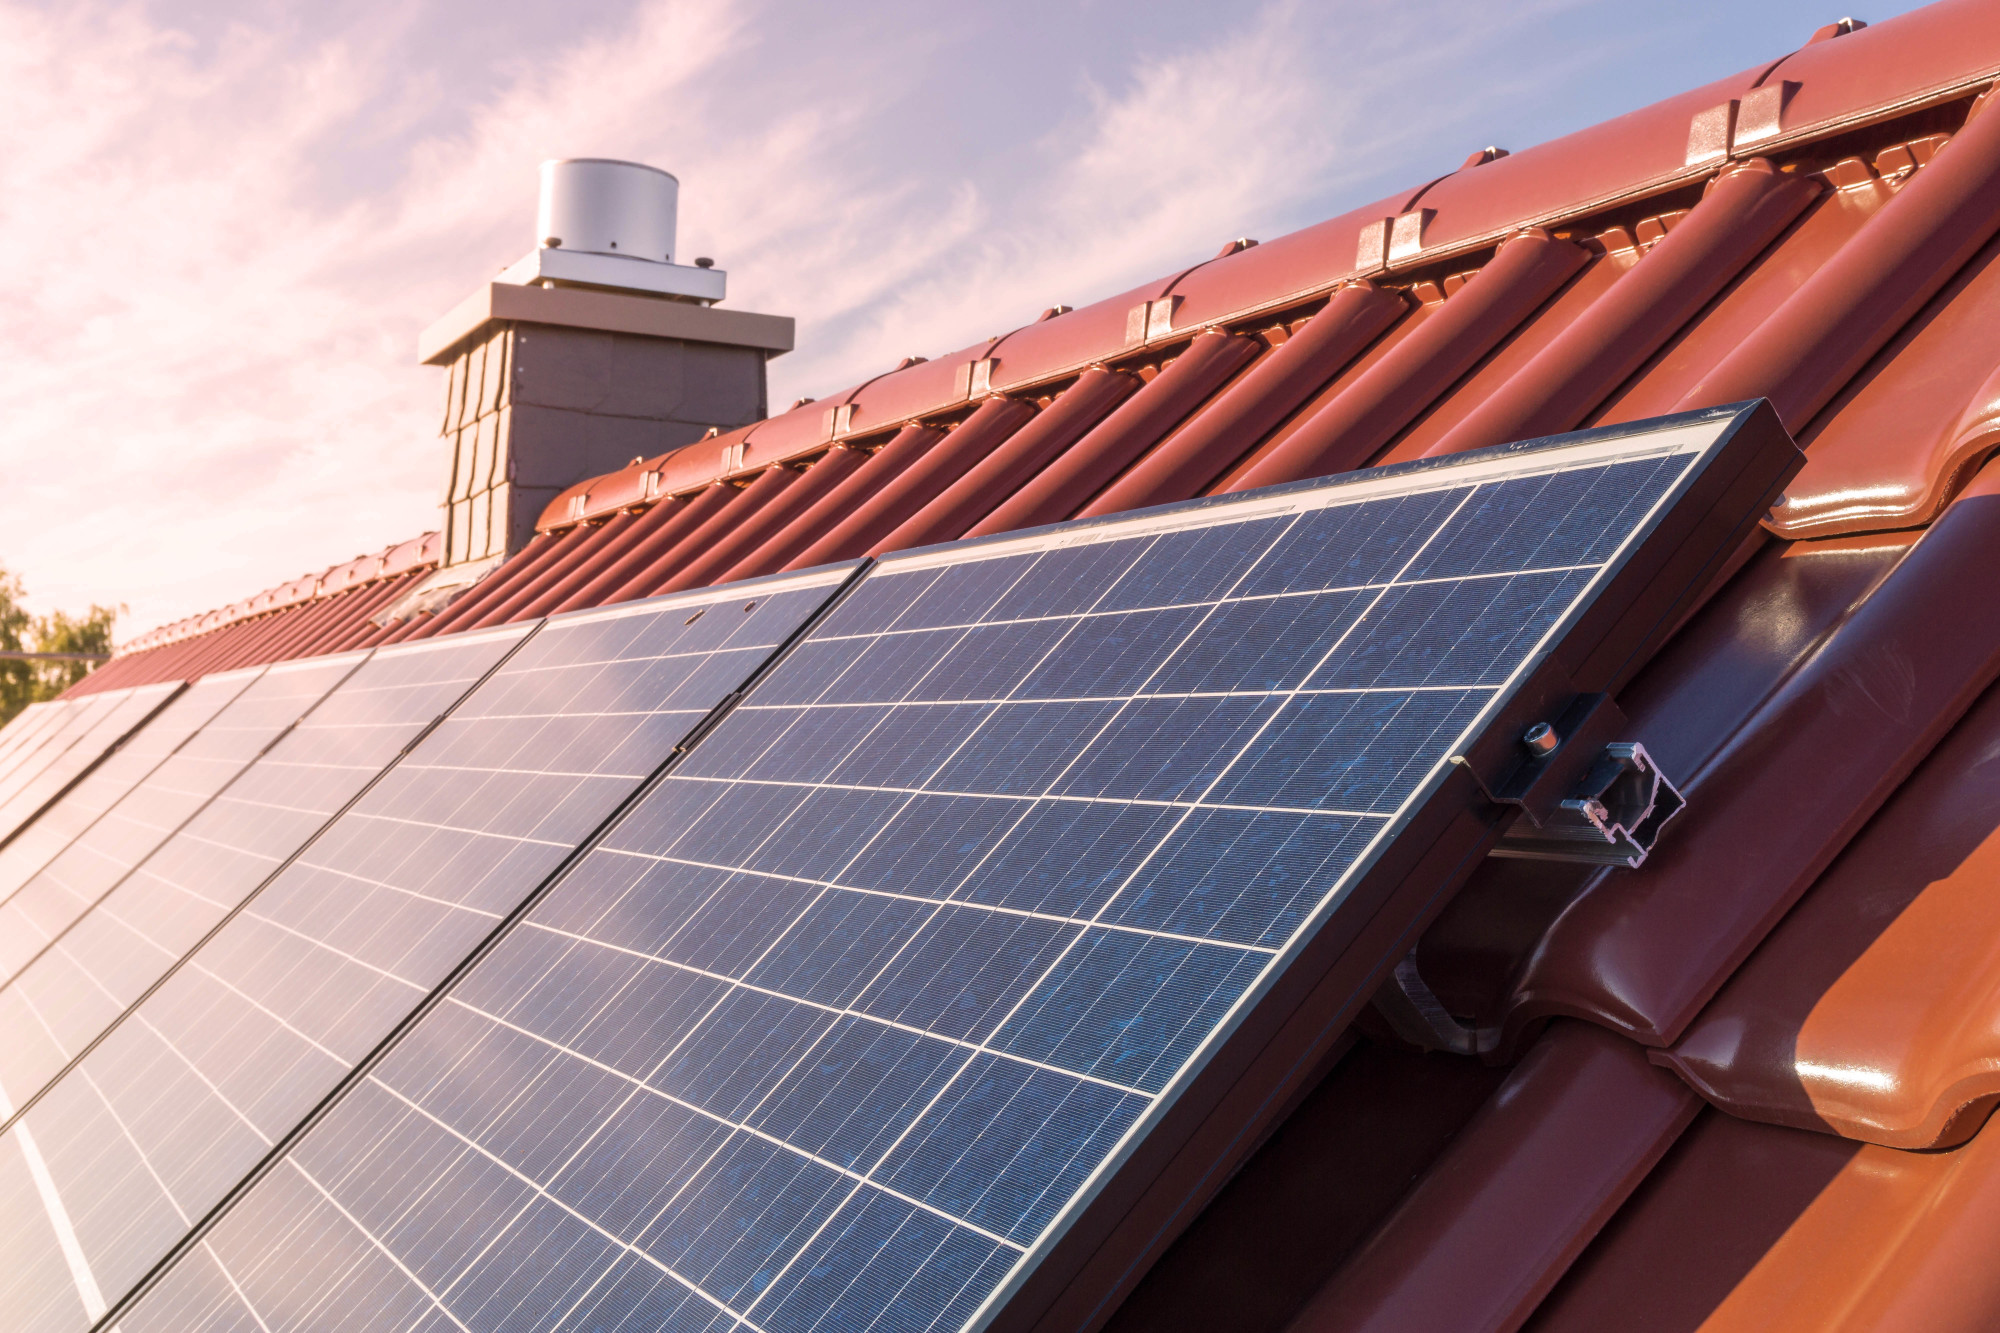 7 Reasons Why Solar Paneling Is the Technology of the Future